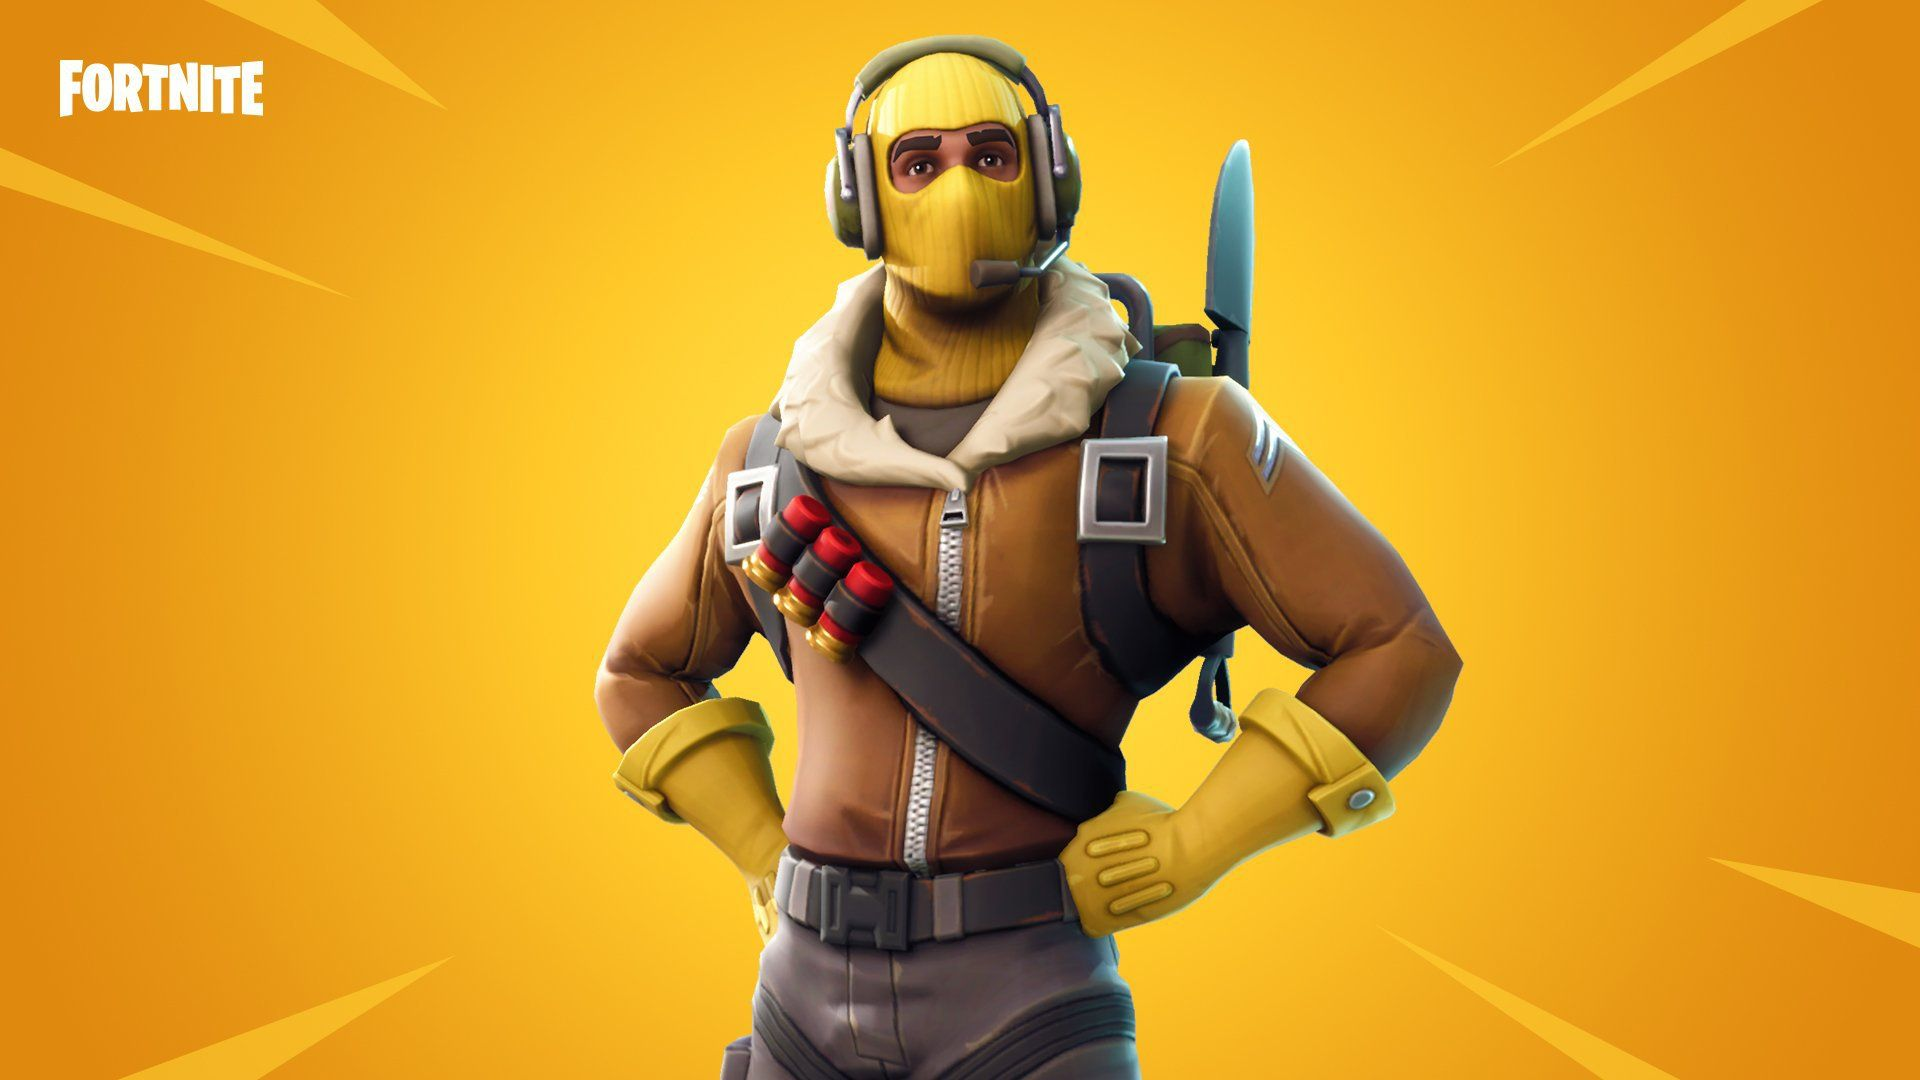 86 Drift Skin Fortnite Wallpaper Drift Fortnite Wallpaper Season